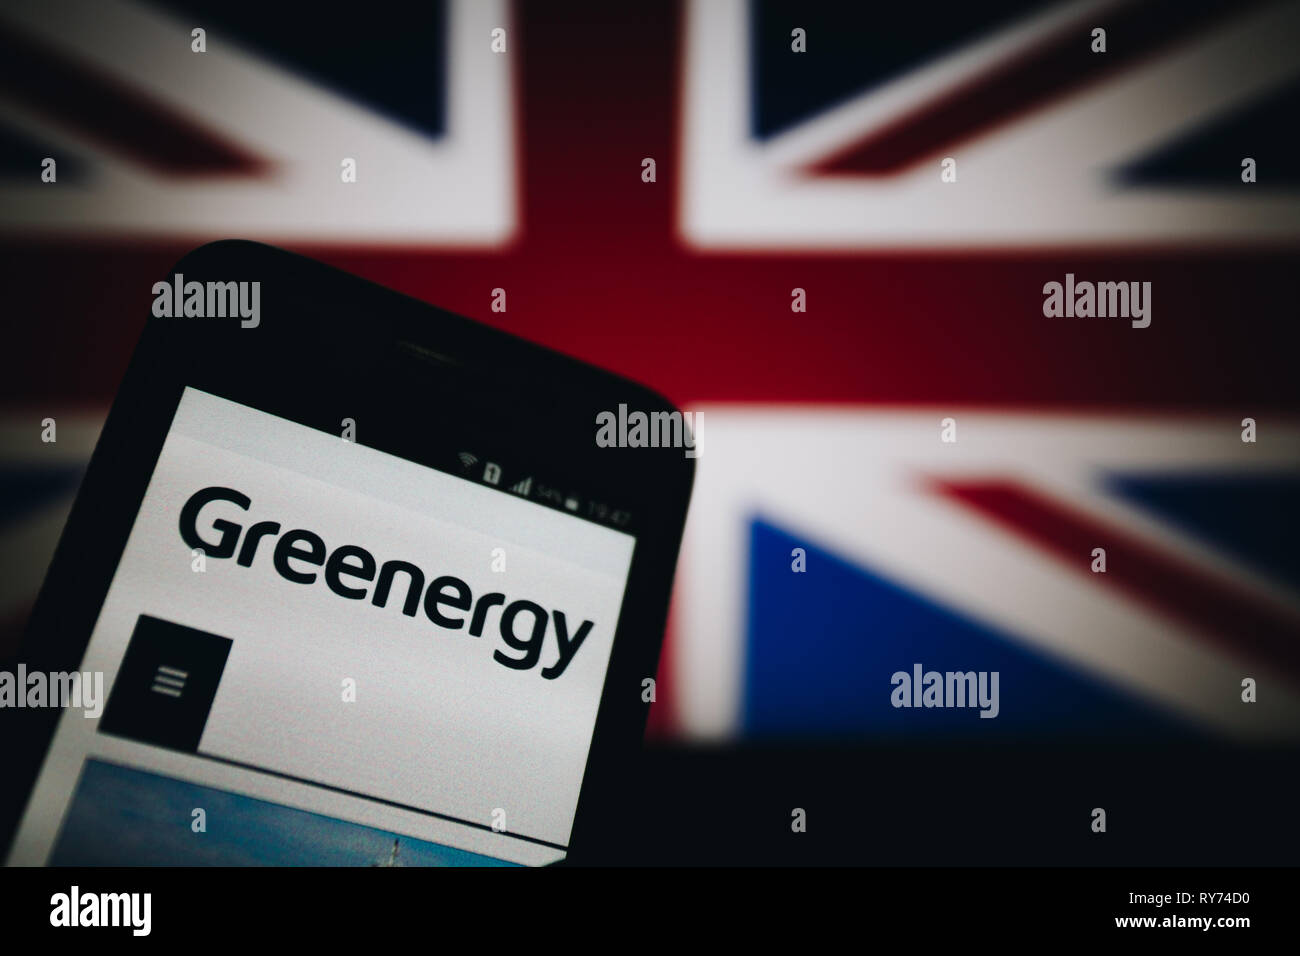 Greenergy, a British distributor of petrol and diesel for motor vehicles. Logo on its website is seen on a smartphone display - Stock Image